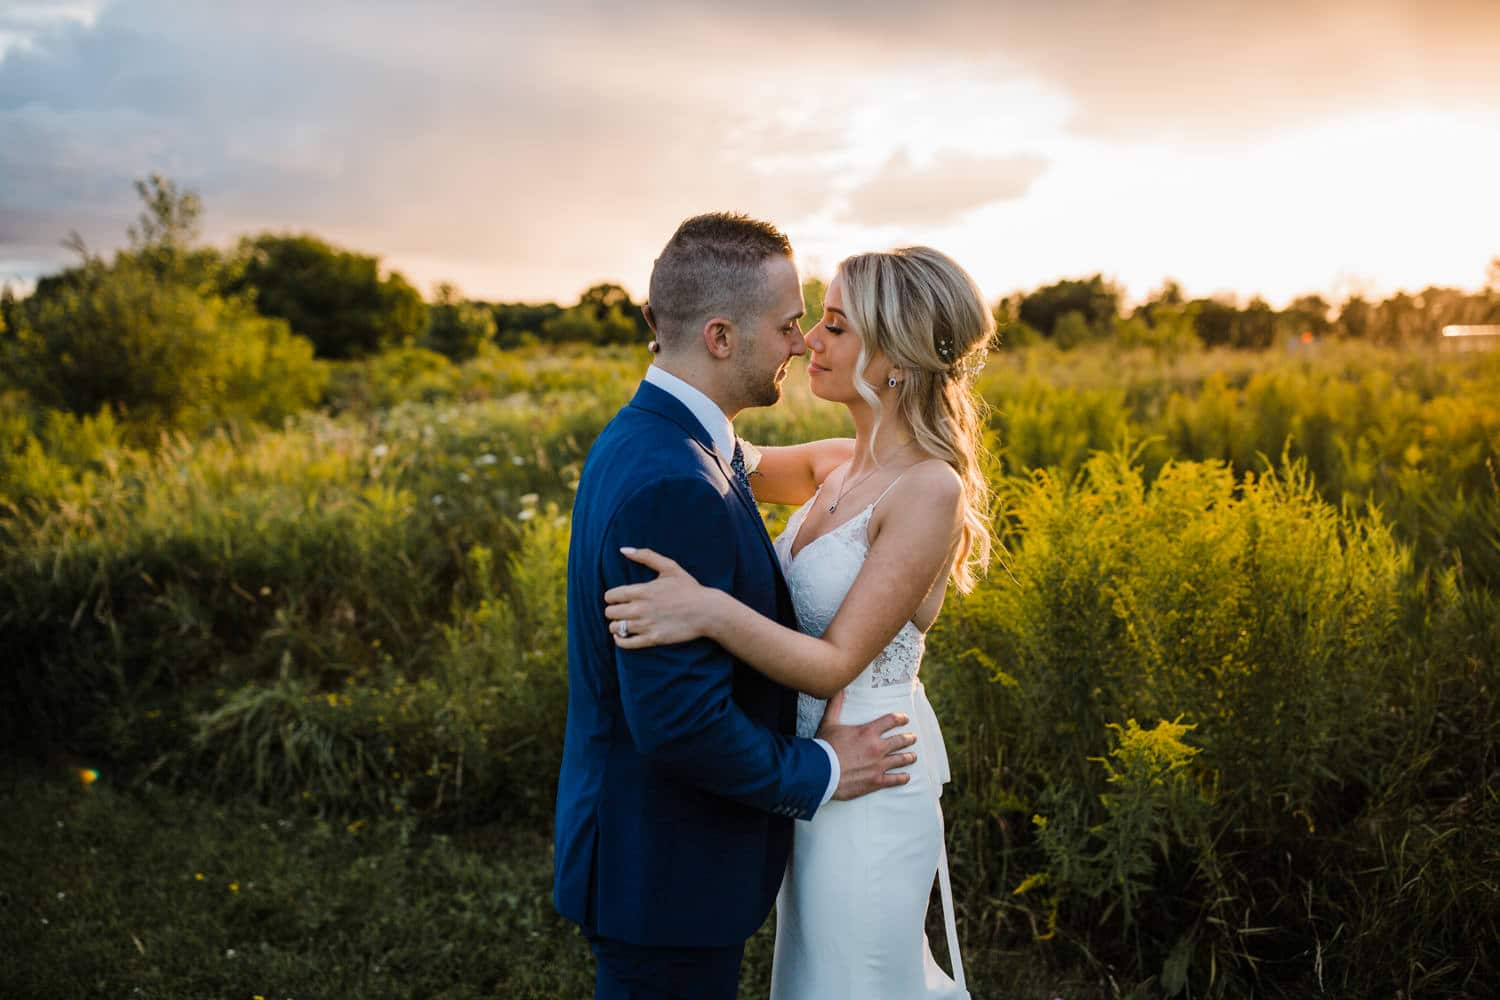 bride and groom embrace during golden hour - summer strathmere wedding - carley teresa photography